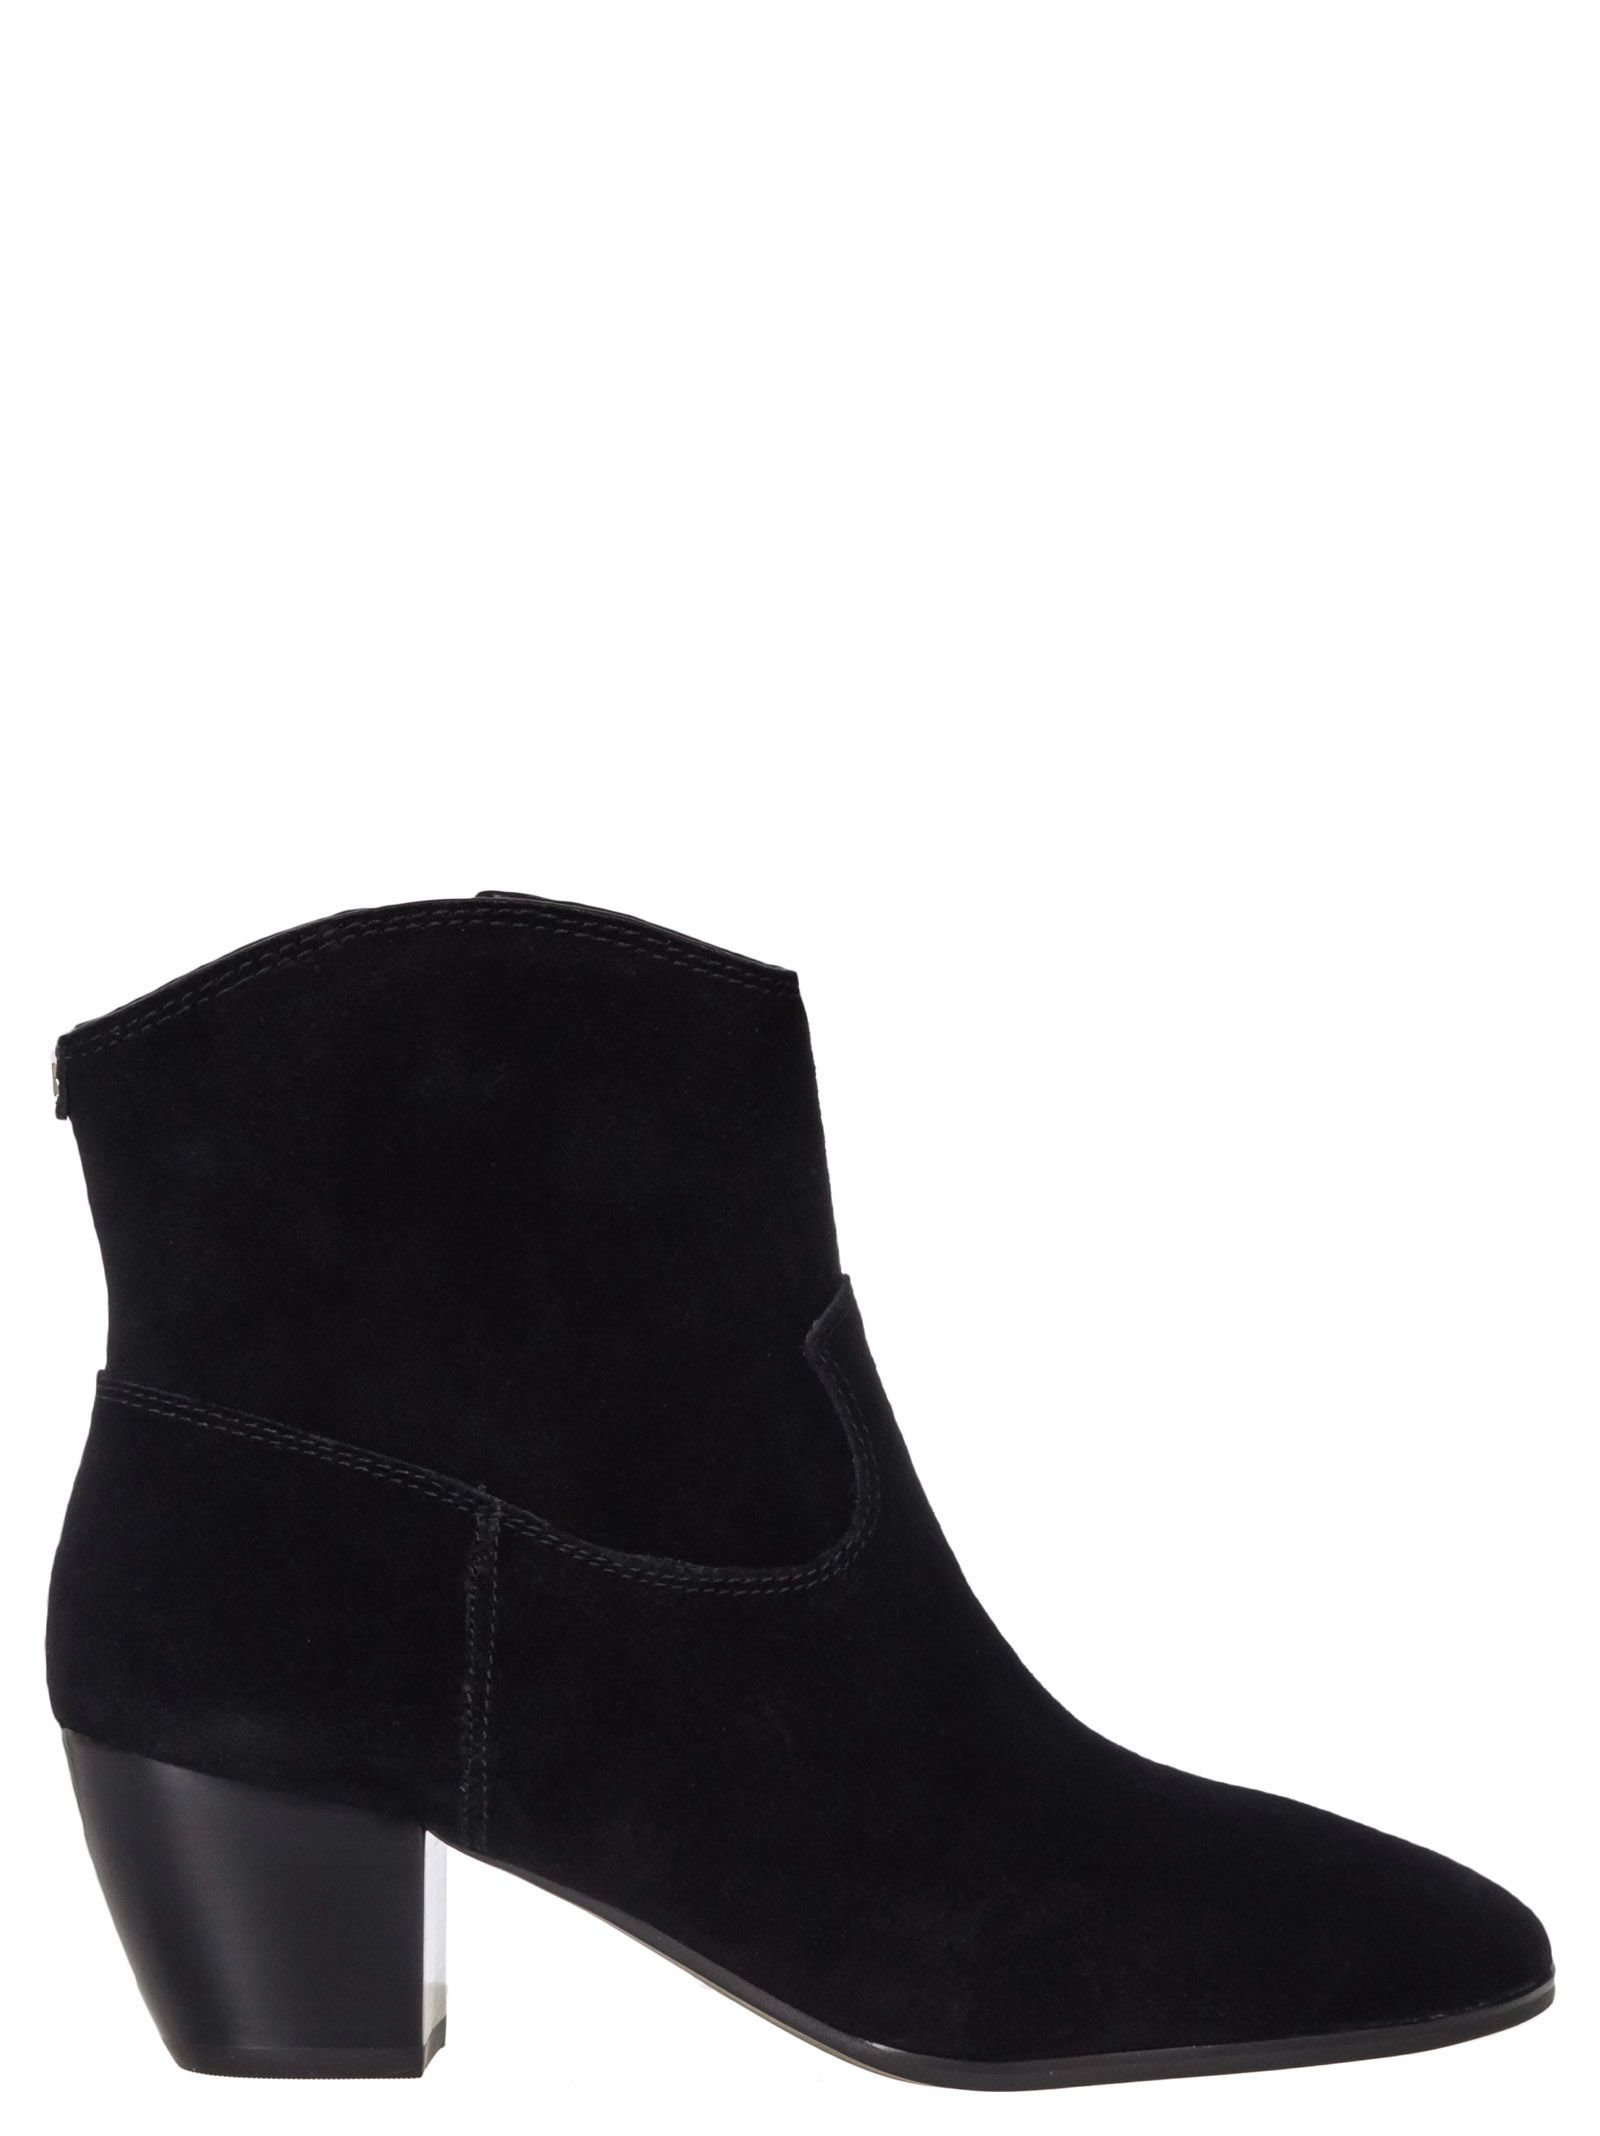 Michael Kors Avery Ankle Boots